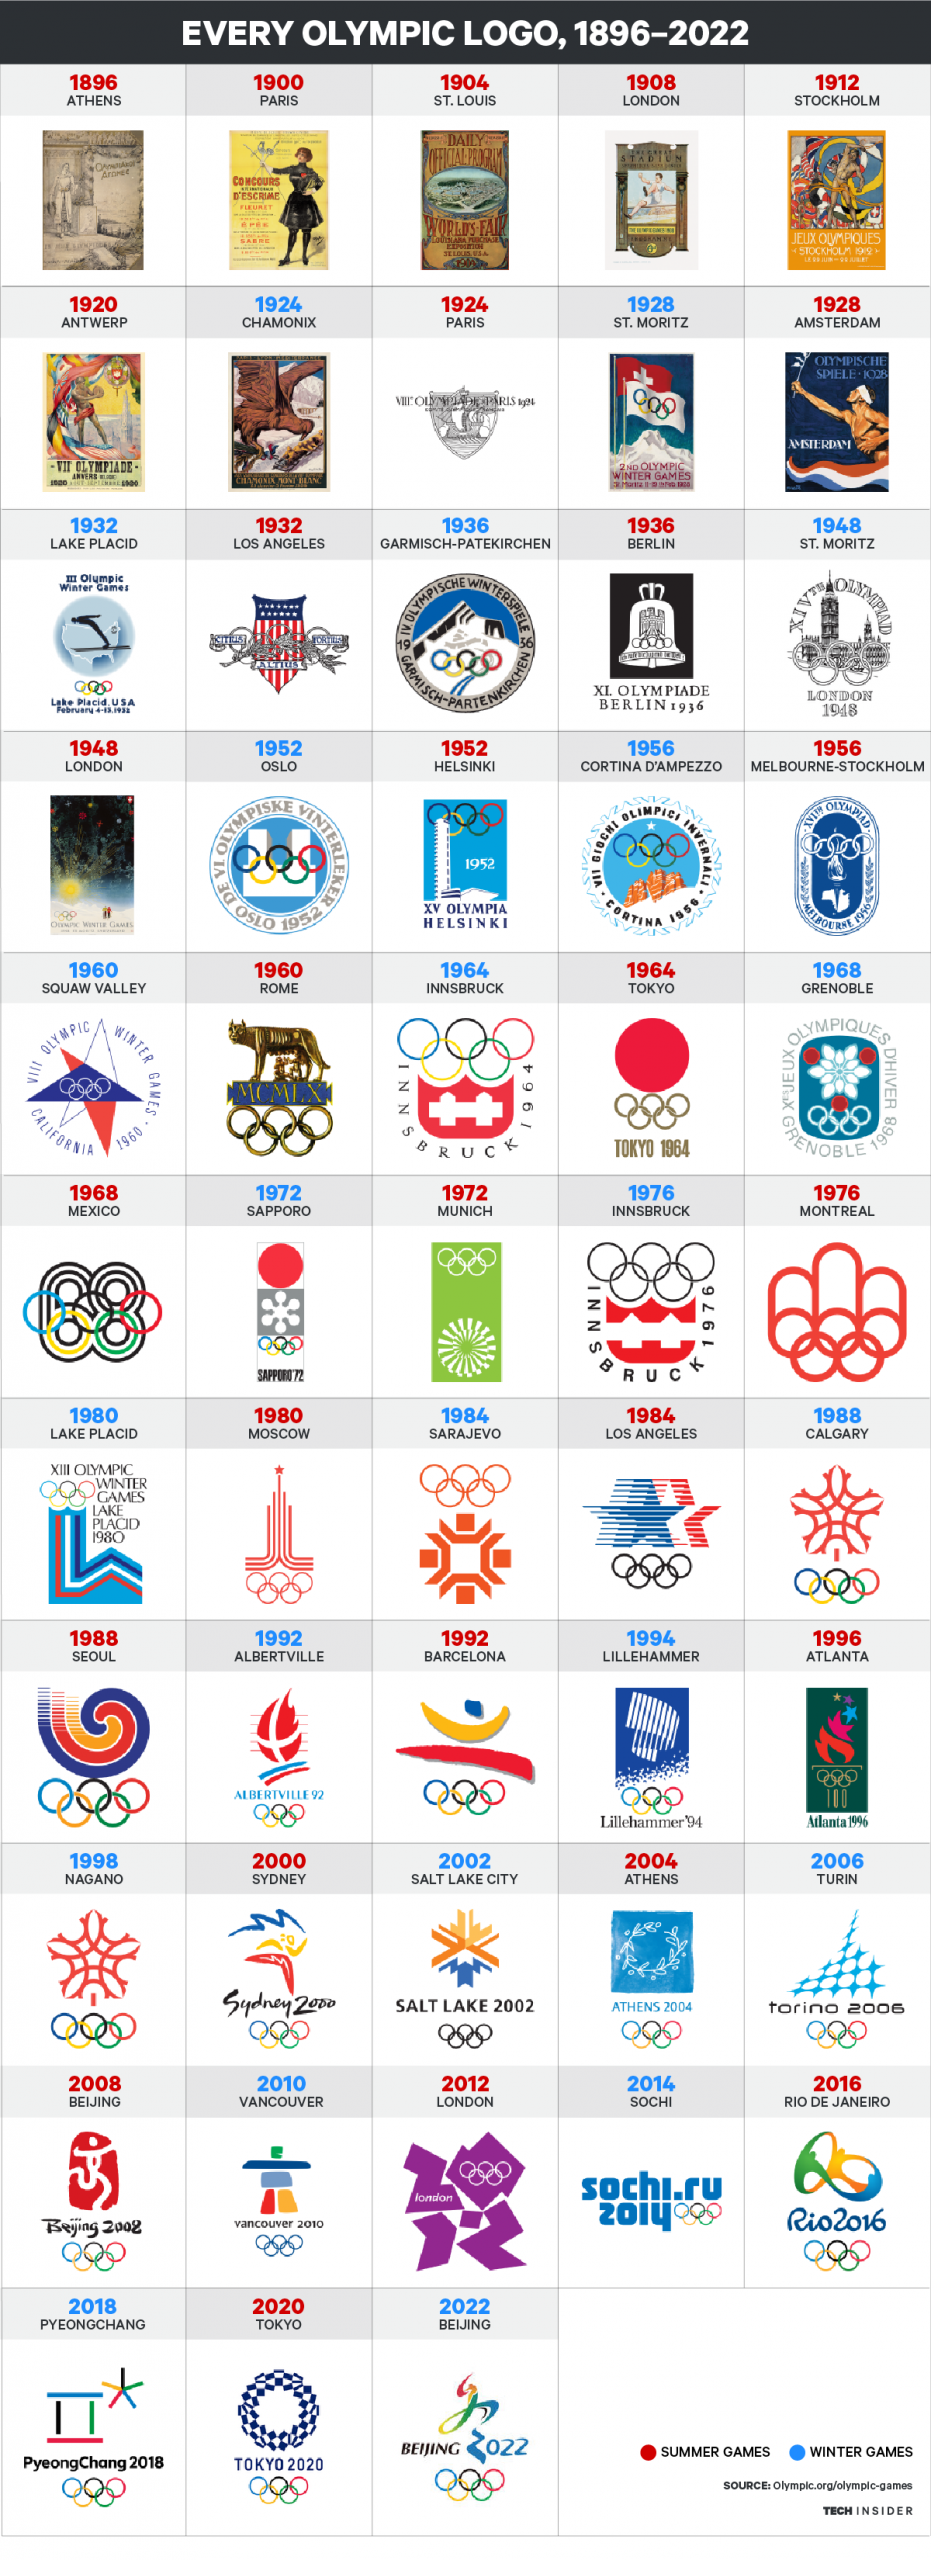 Here's every Olympic logo from 1896 to 2022 Olympic logo